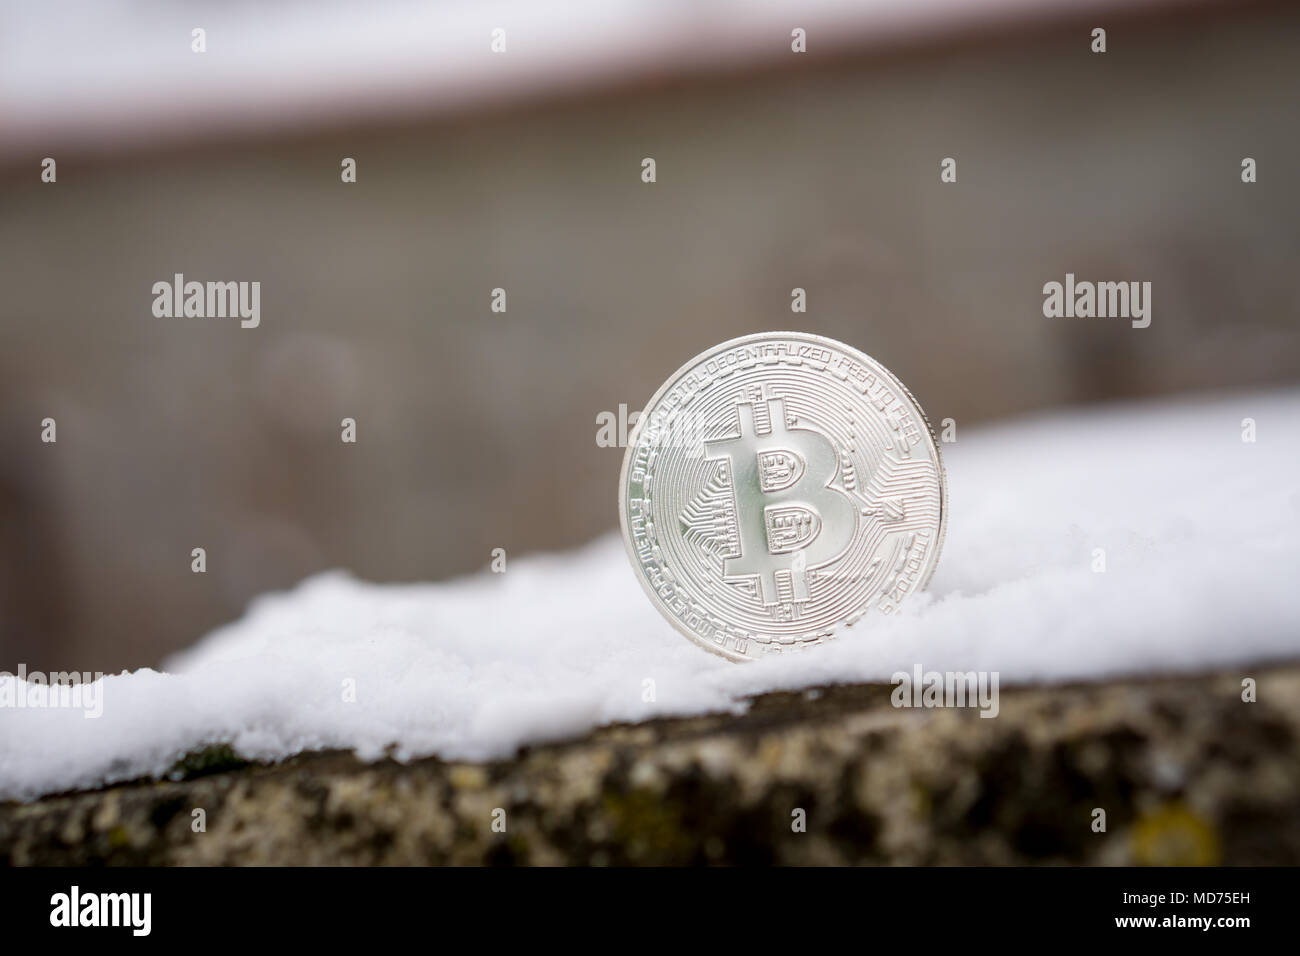 A silver Bitcoin placed in snow on concrete. Isolated scene of  cryptocurrency in snow - Stock Image